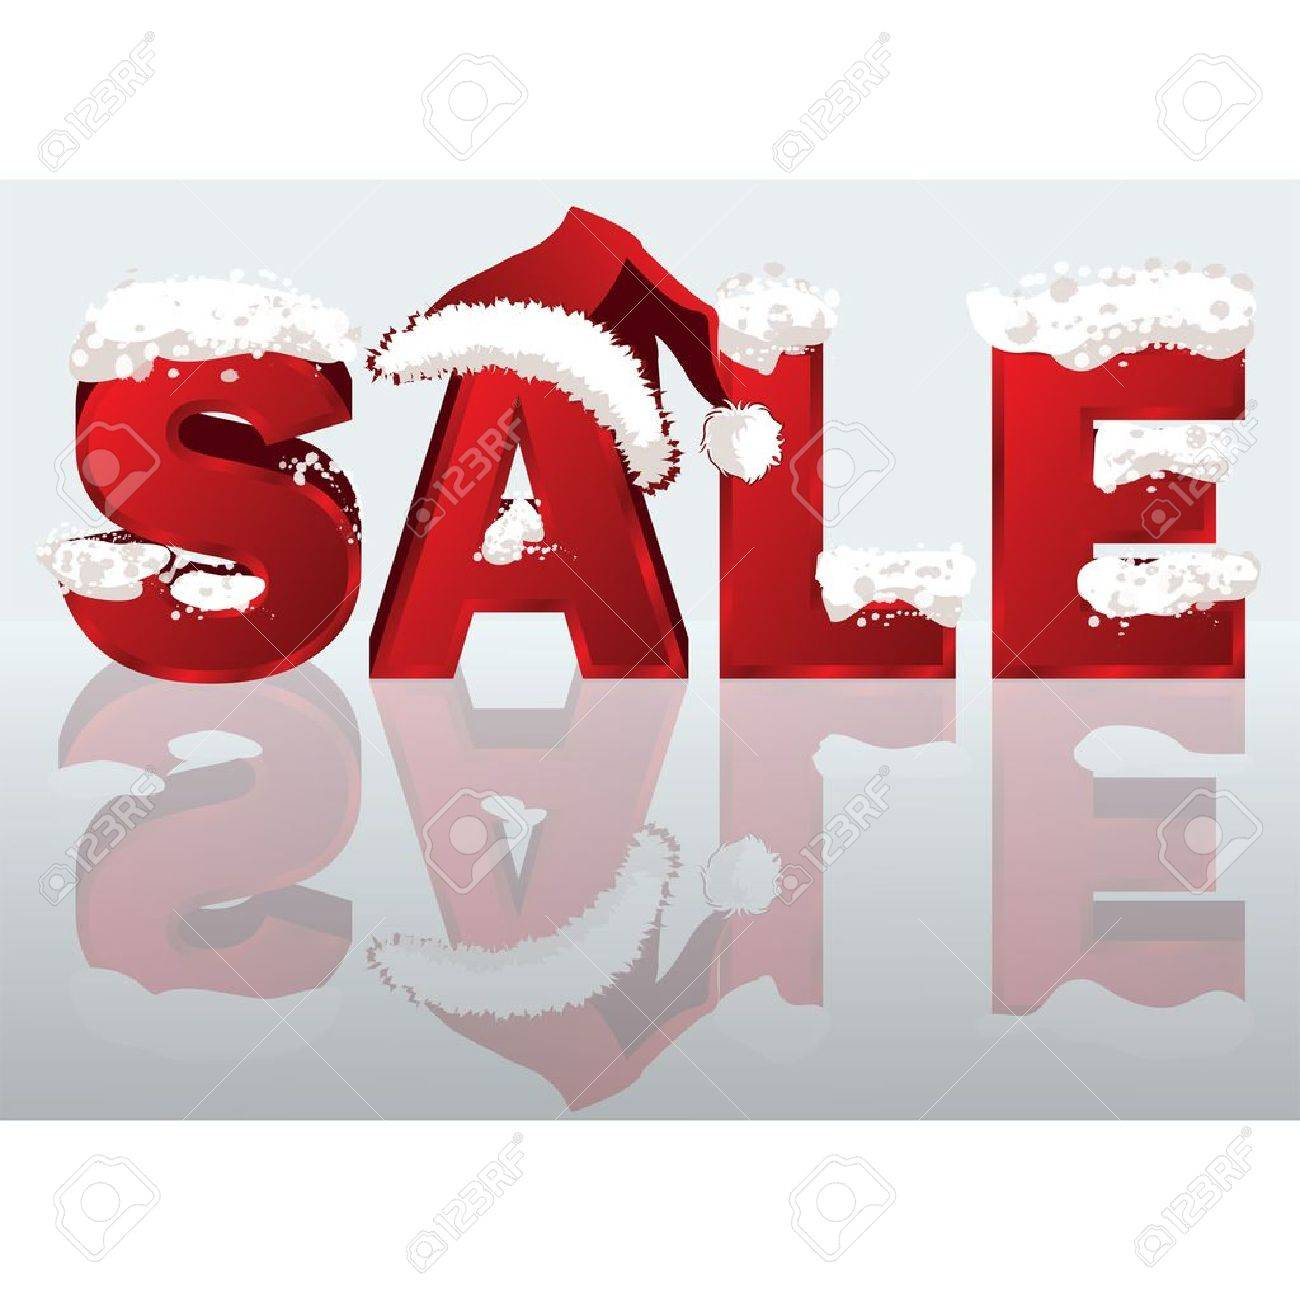 Christmas Sale Stock Photos Images. Royalty Free Christmas Sale ...